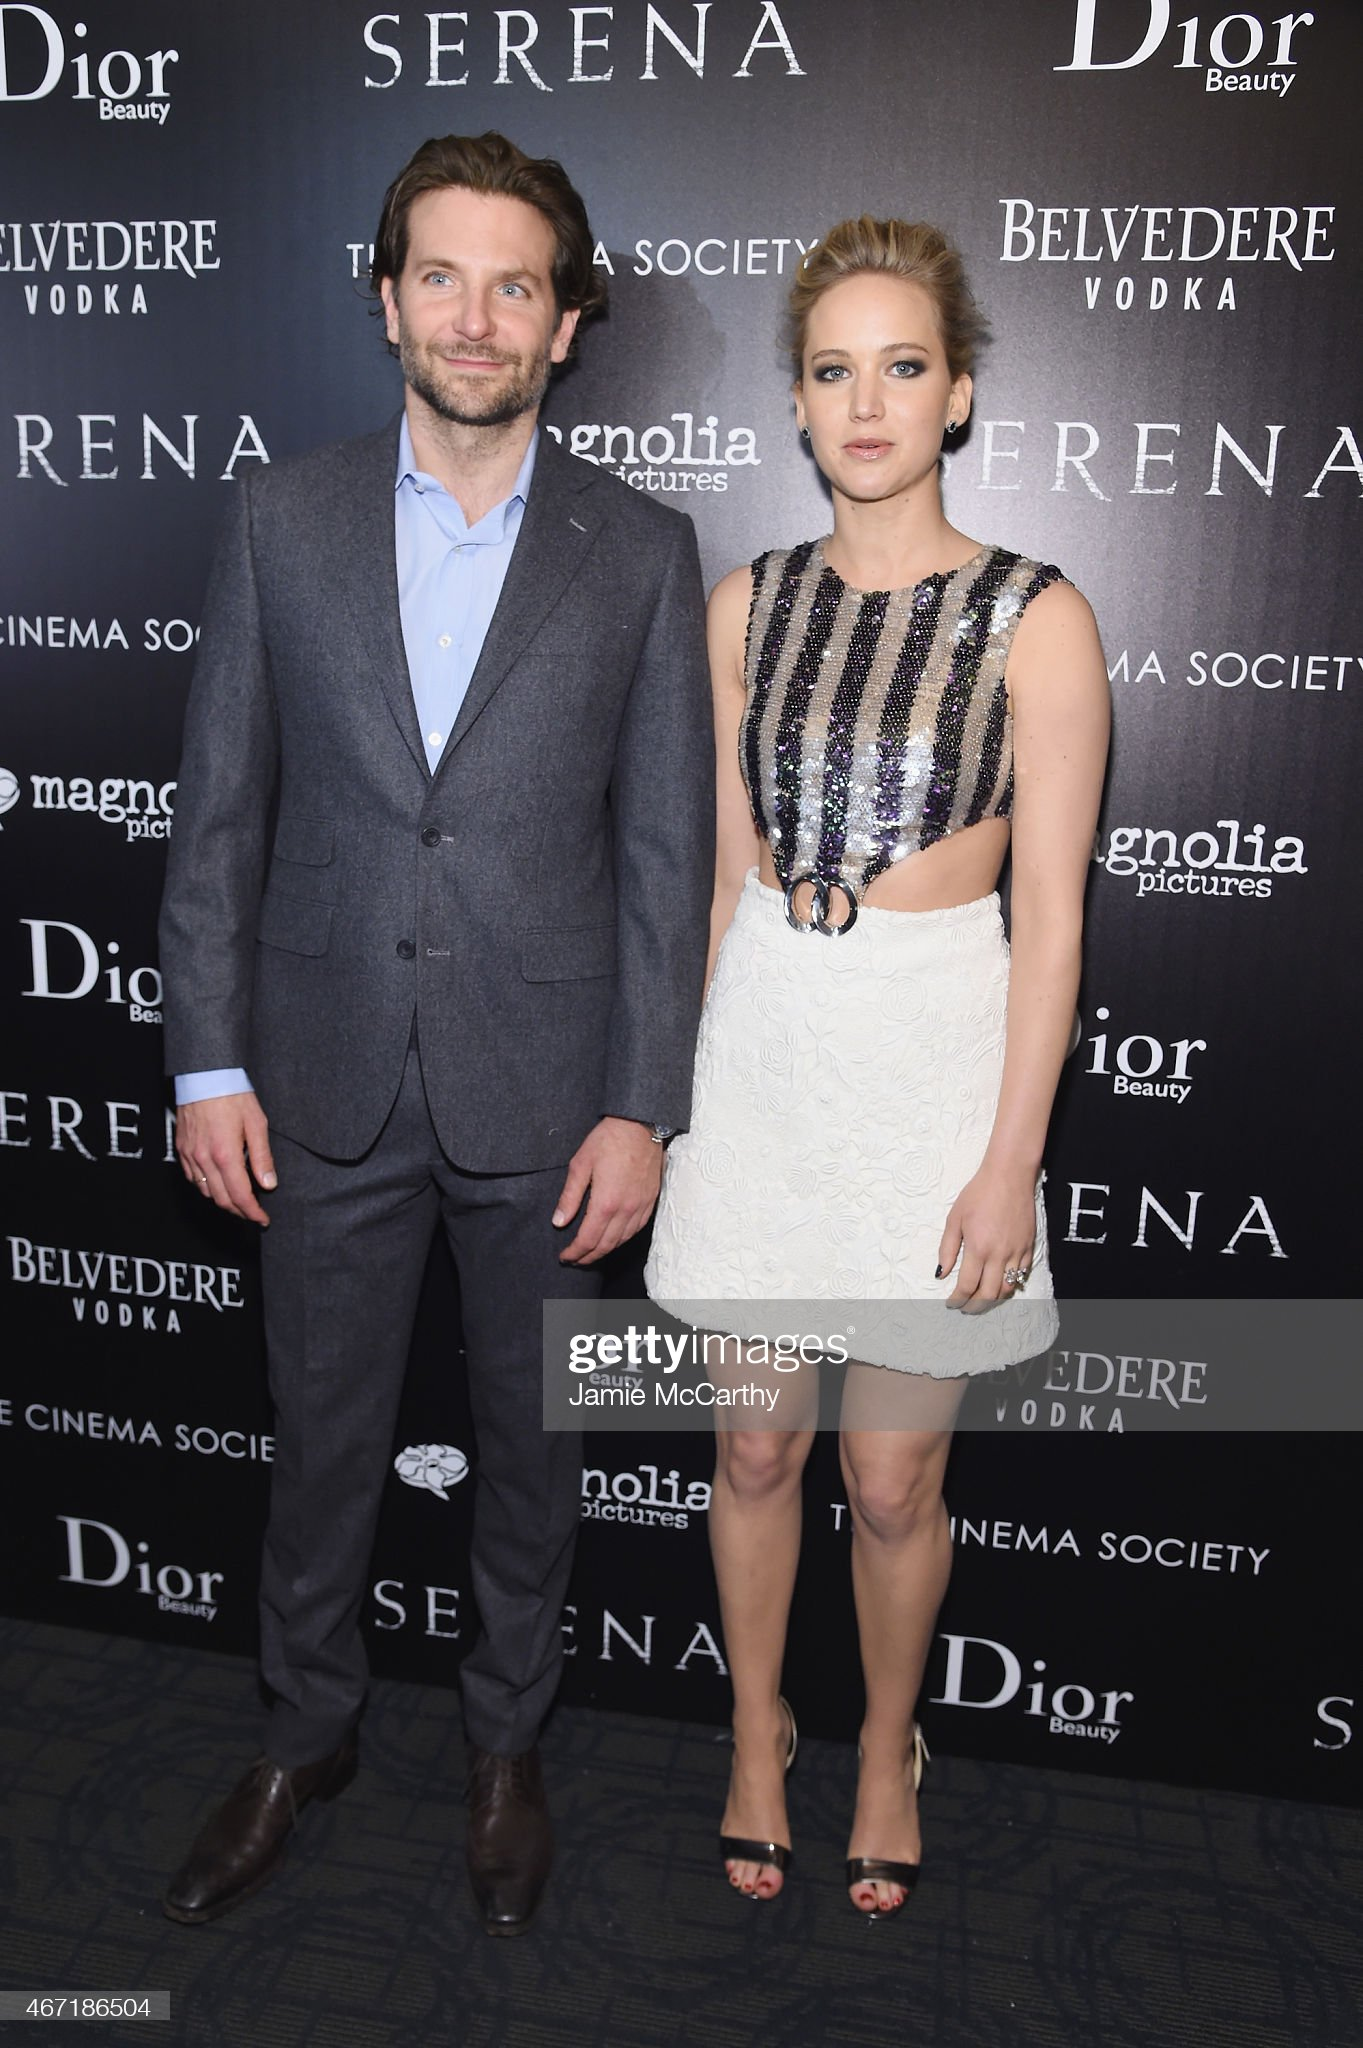 ¿Cuánto mide Jennifer Lawrence? - Altura - Real height Actors-bradley-cooper-and-jennifer-lawrence-attend-a-screening-of-picture-id467186504?s=2048x2048